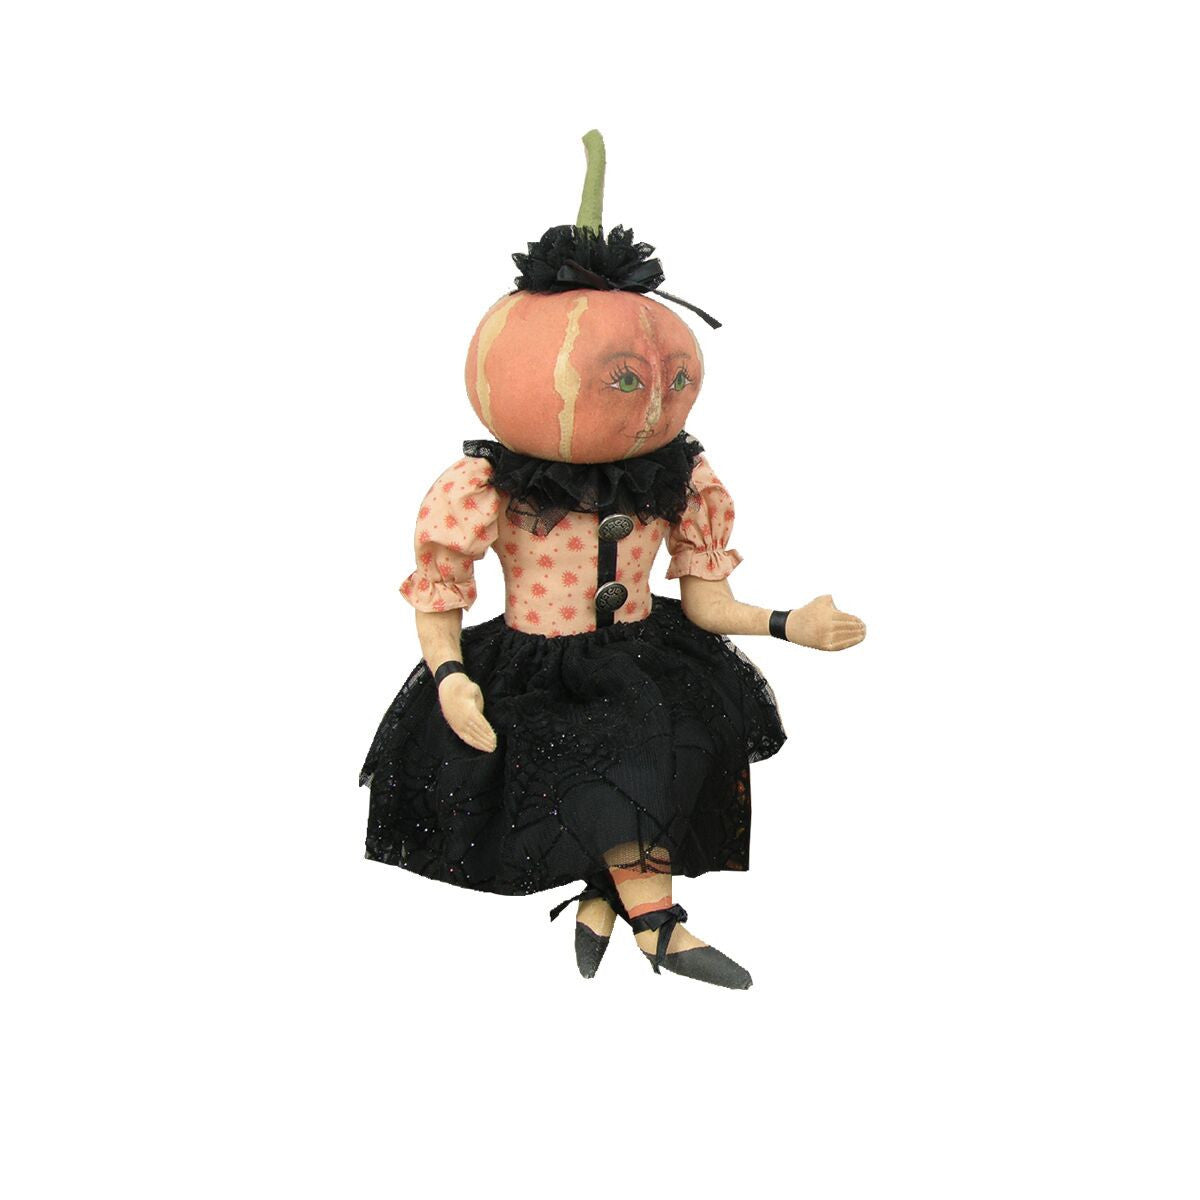 Pauline Pumpkin by Joe Spencer of Gathered Traditions